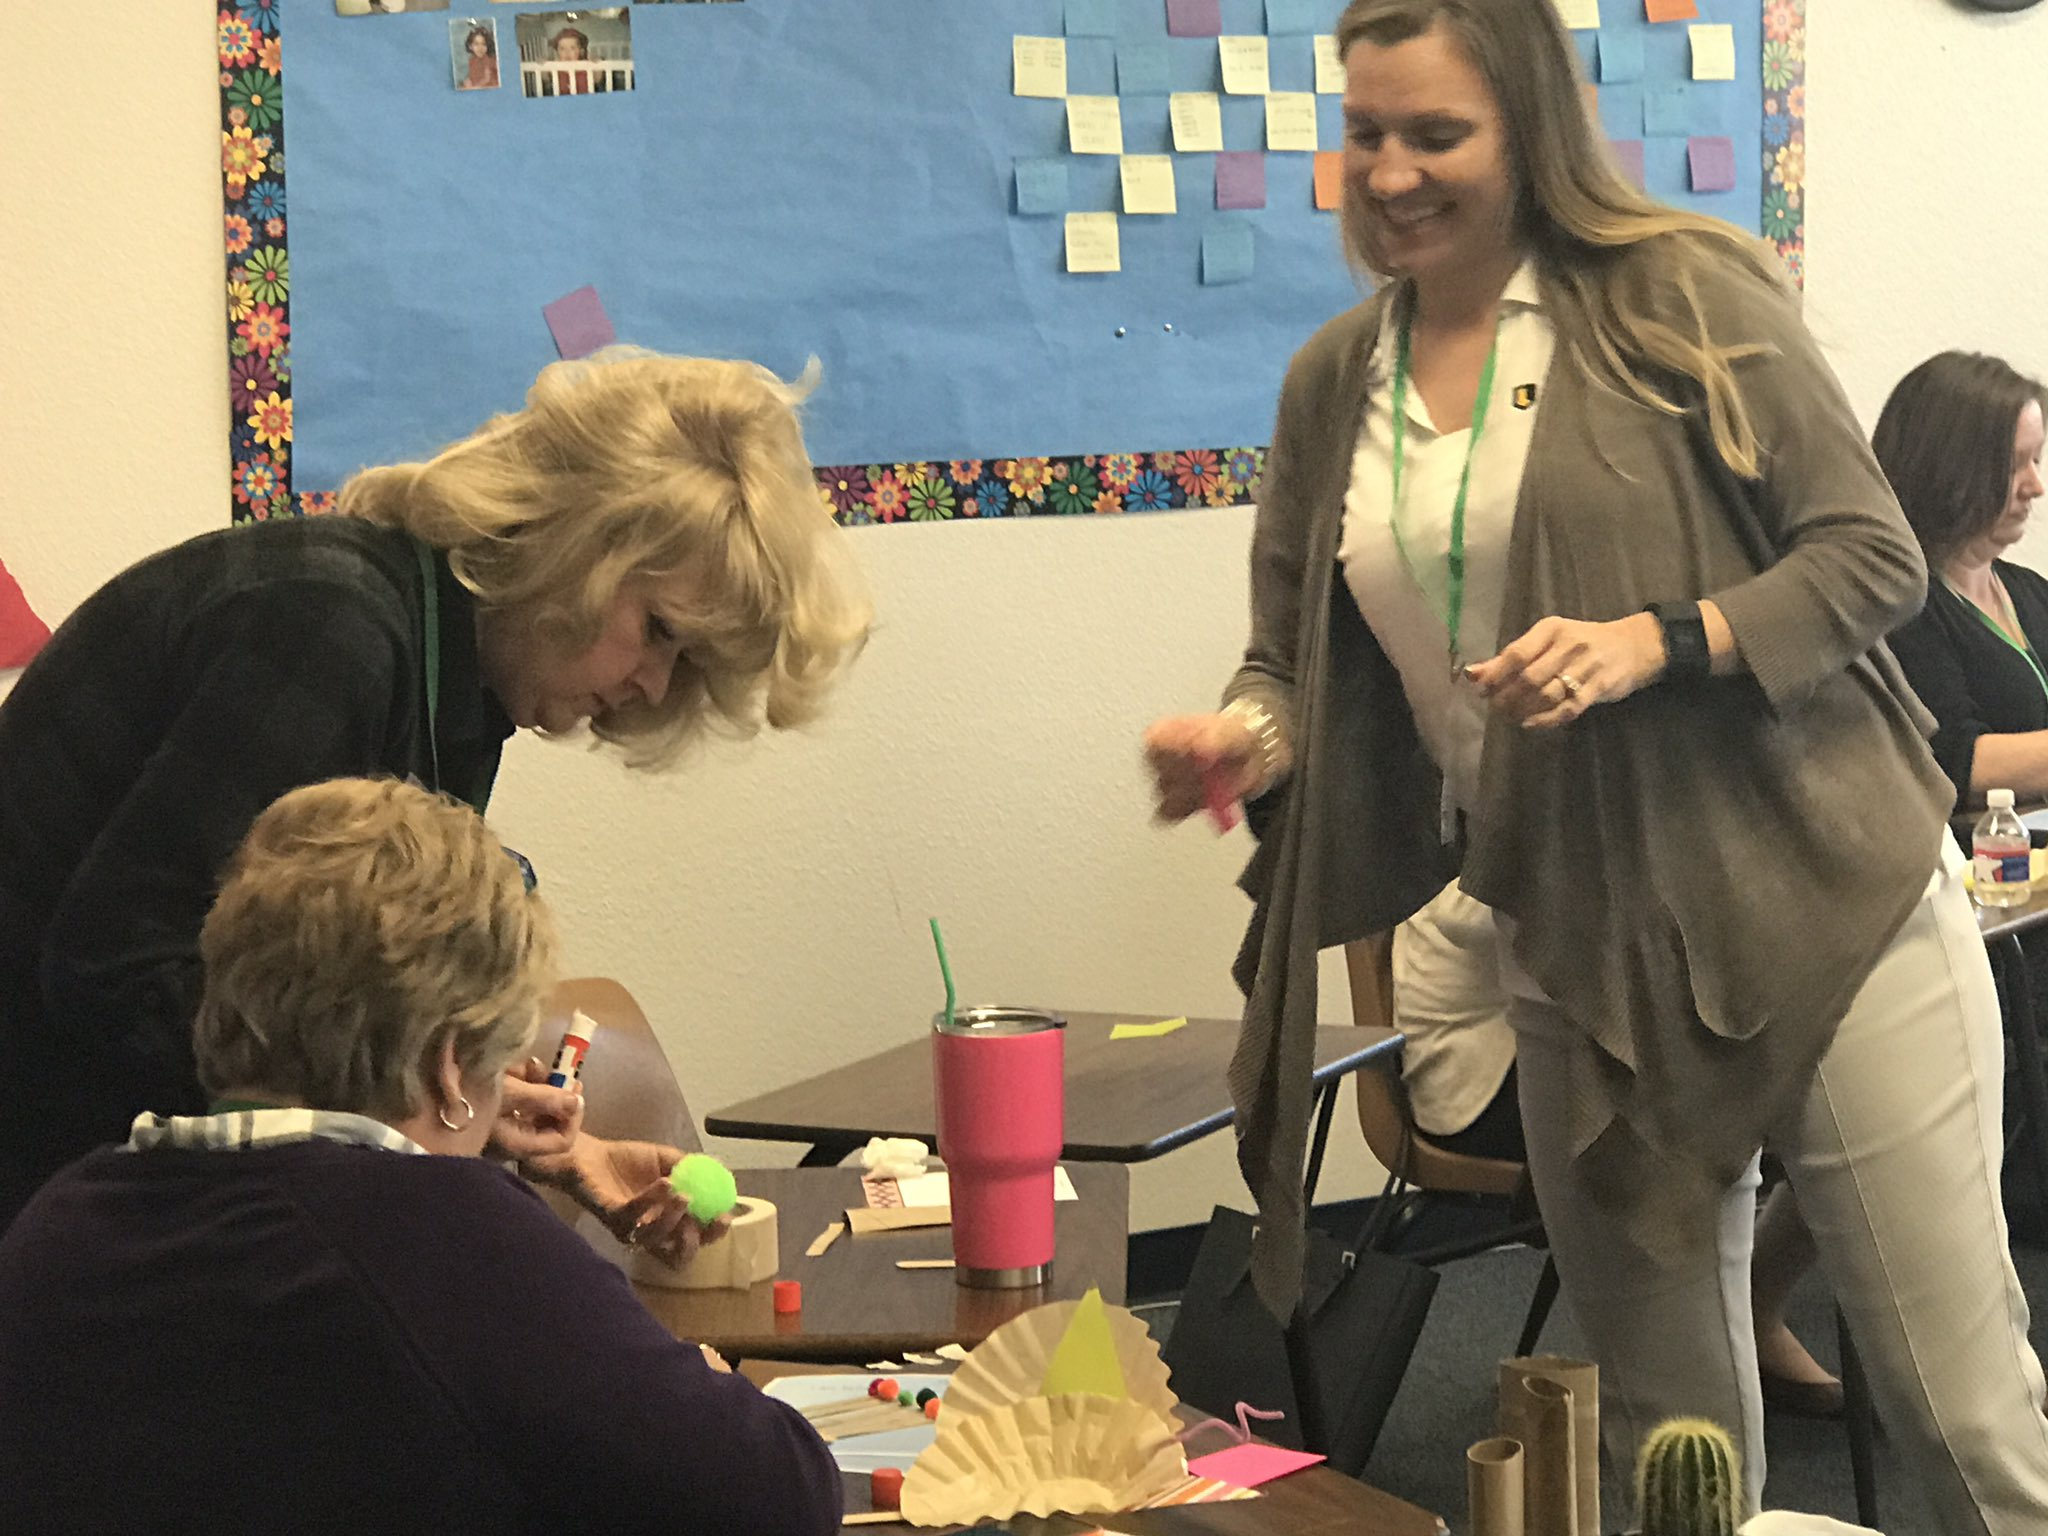 Great examples of professional development that looks like what we want our classrooms to look like at #llisw #llichat @oakridgeowls https://t.co/0x8kaSCnWN